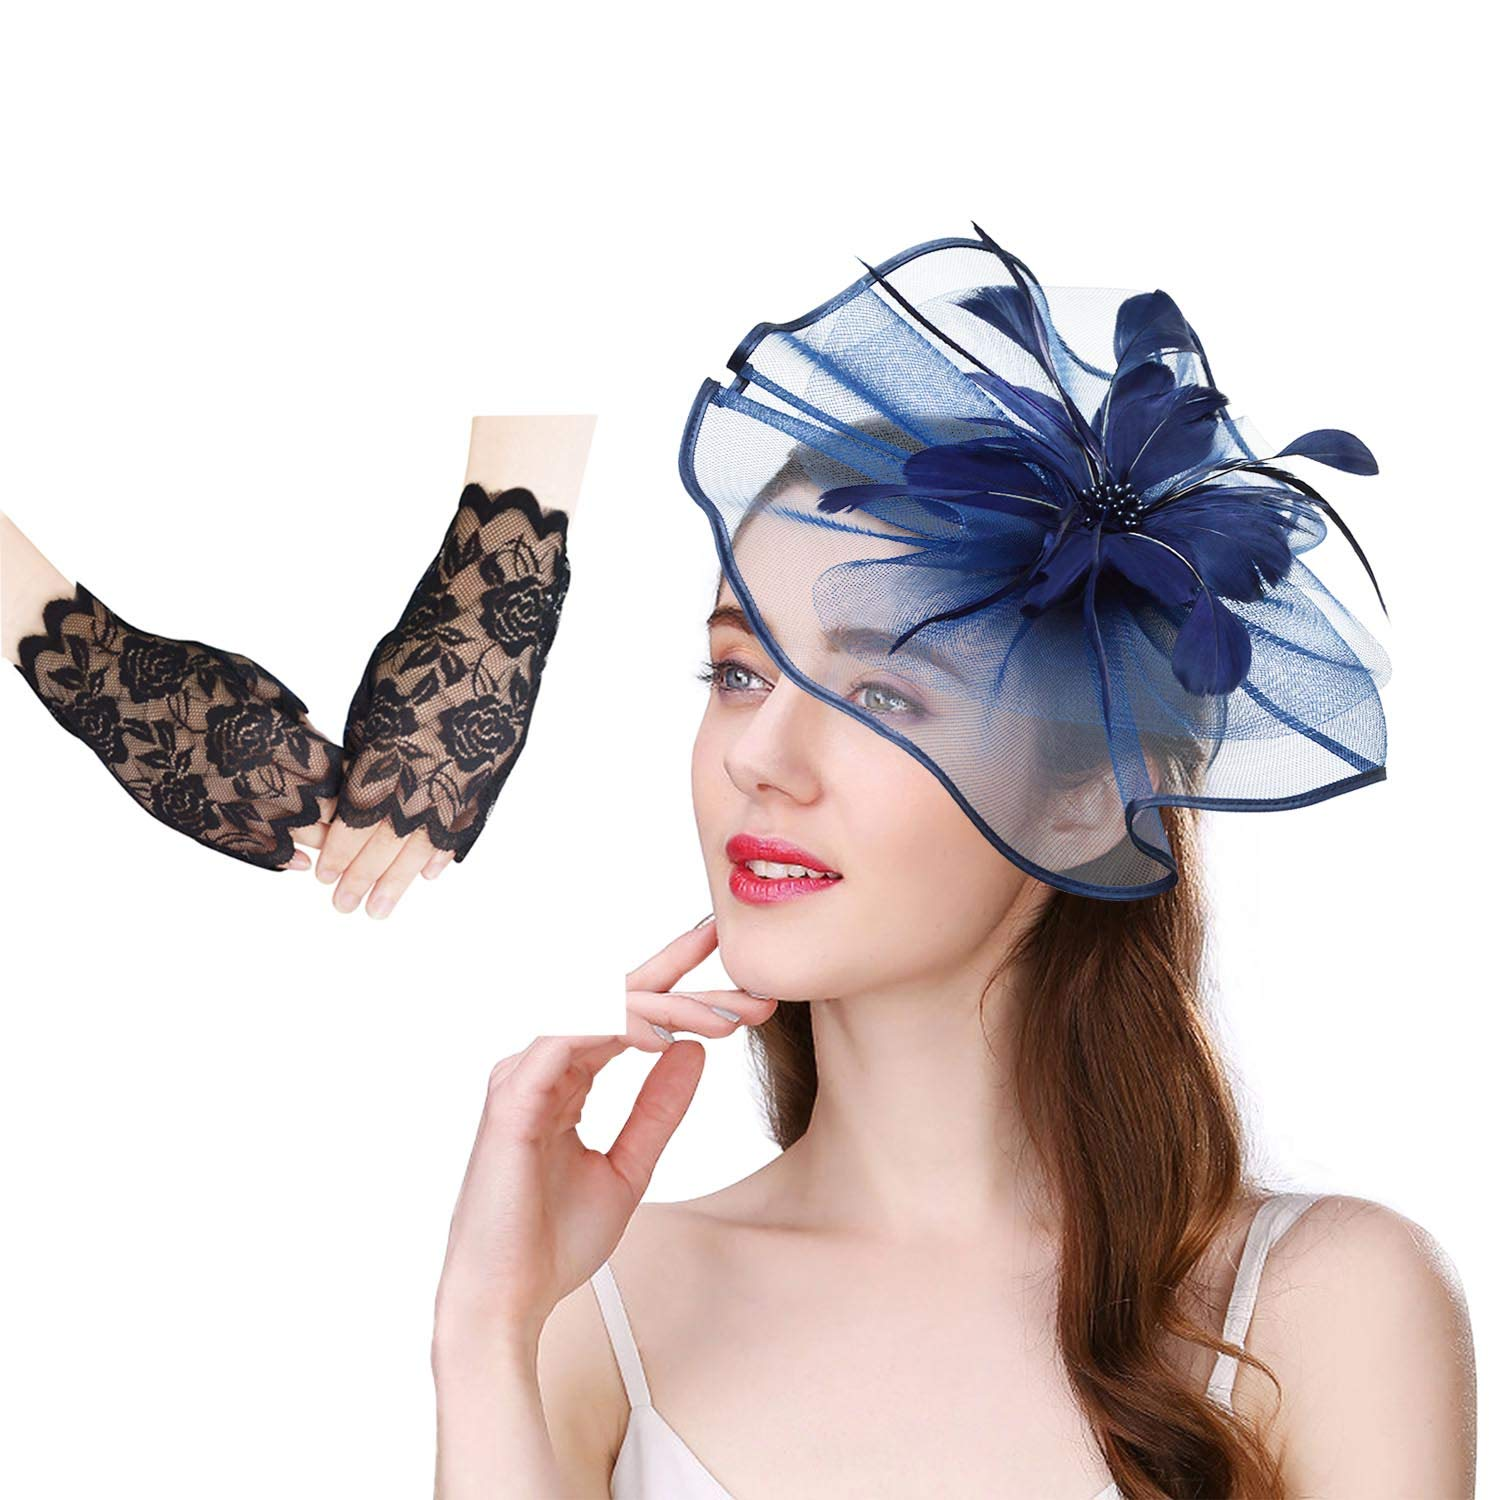 U-Zomir Fascinator Hat Feather Mesh Party Hat Flower Wedding Derby Cocktail Tea Party Headband with Clip and Lace Glove for Girls and Women (Style 1-Navy)